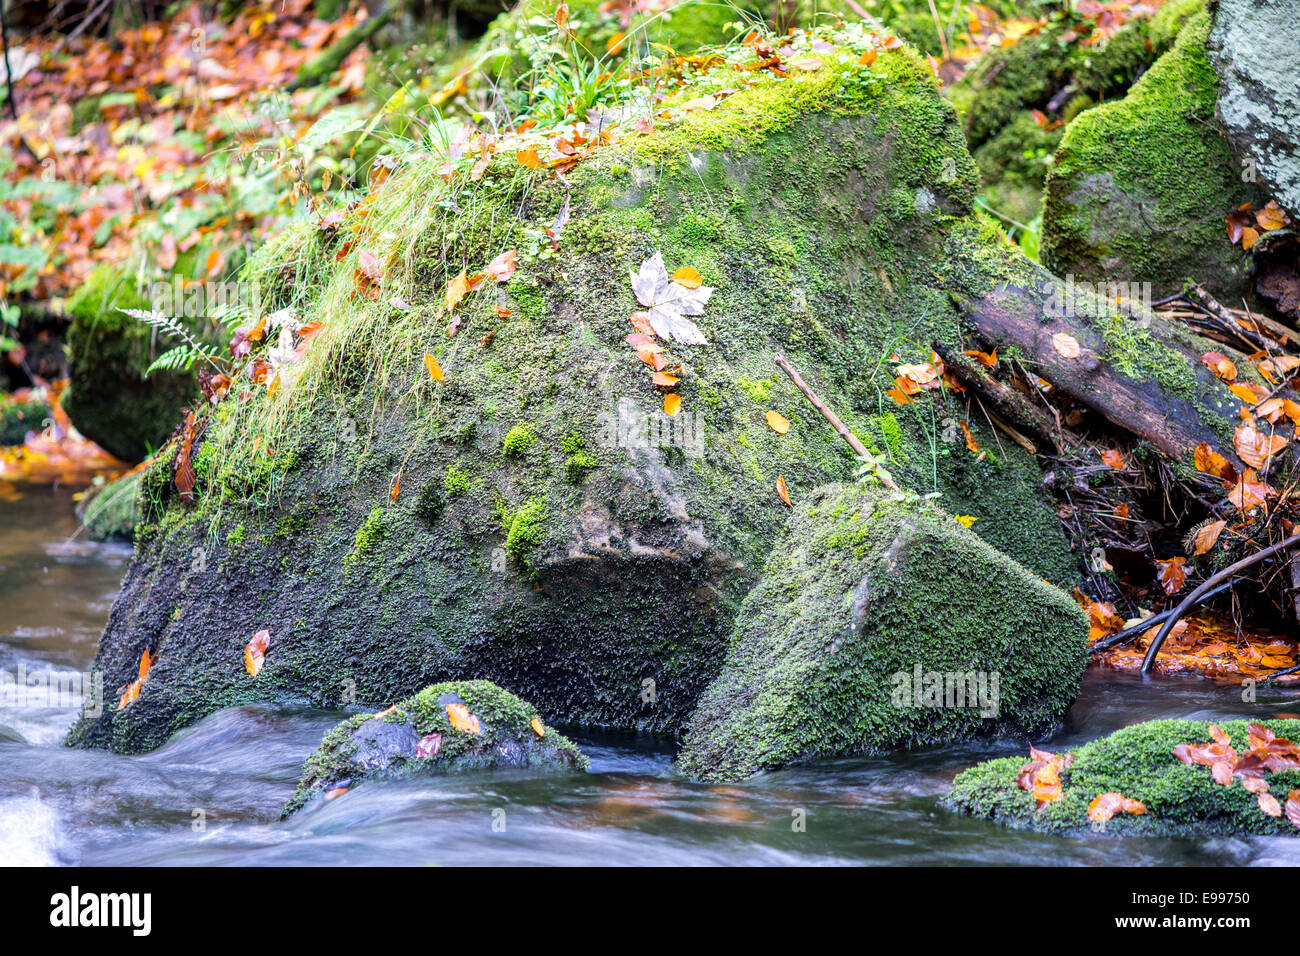 Boulder covered with moss and fallen leaves and running water - Stock Image